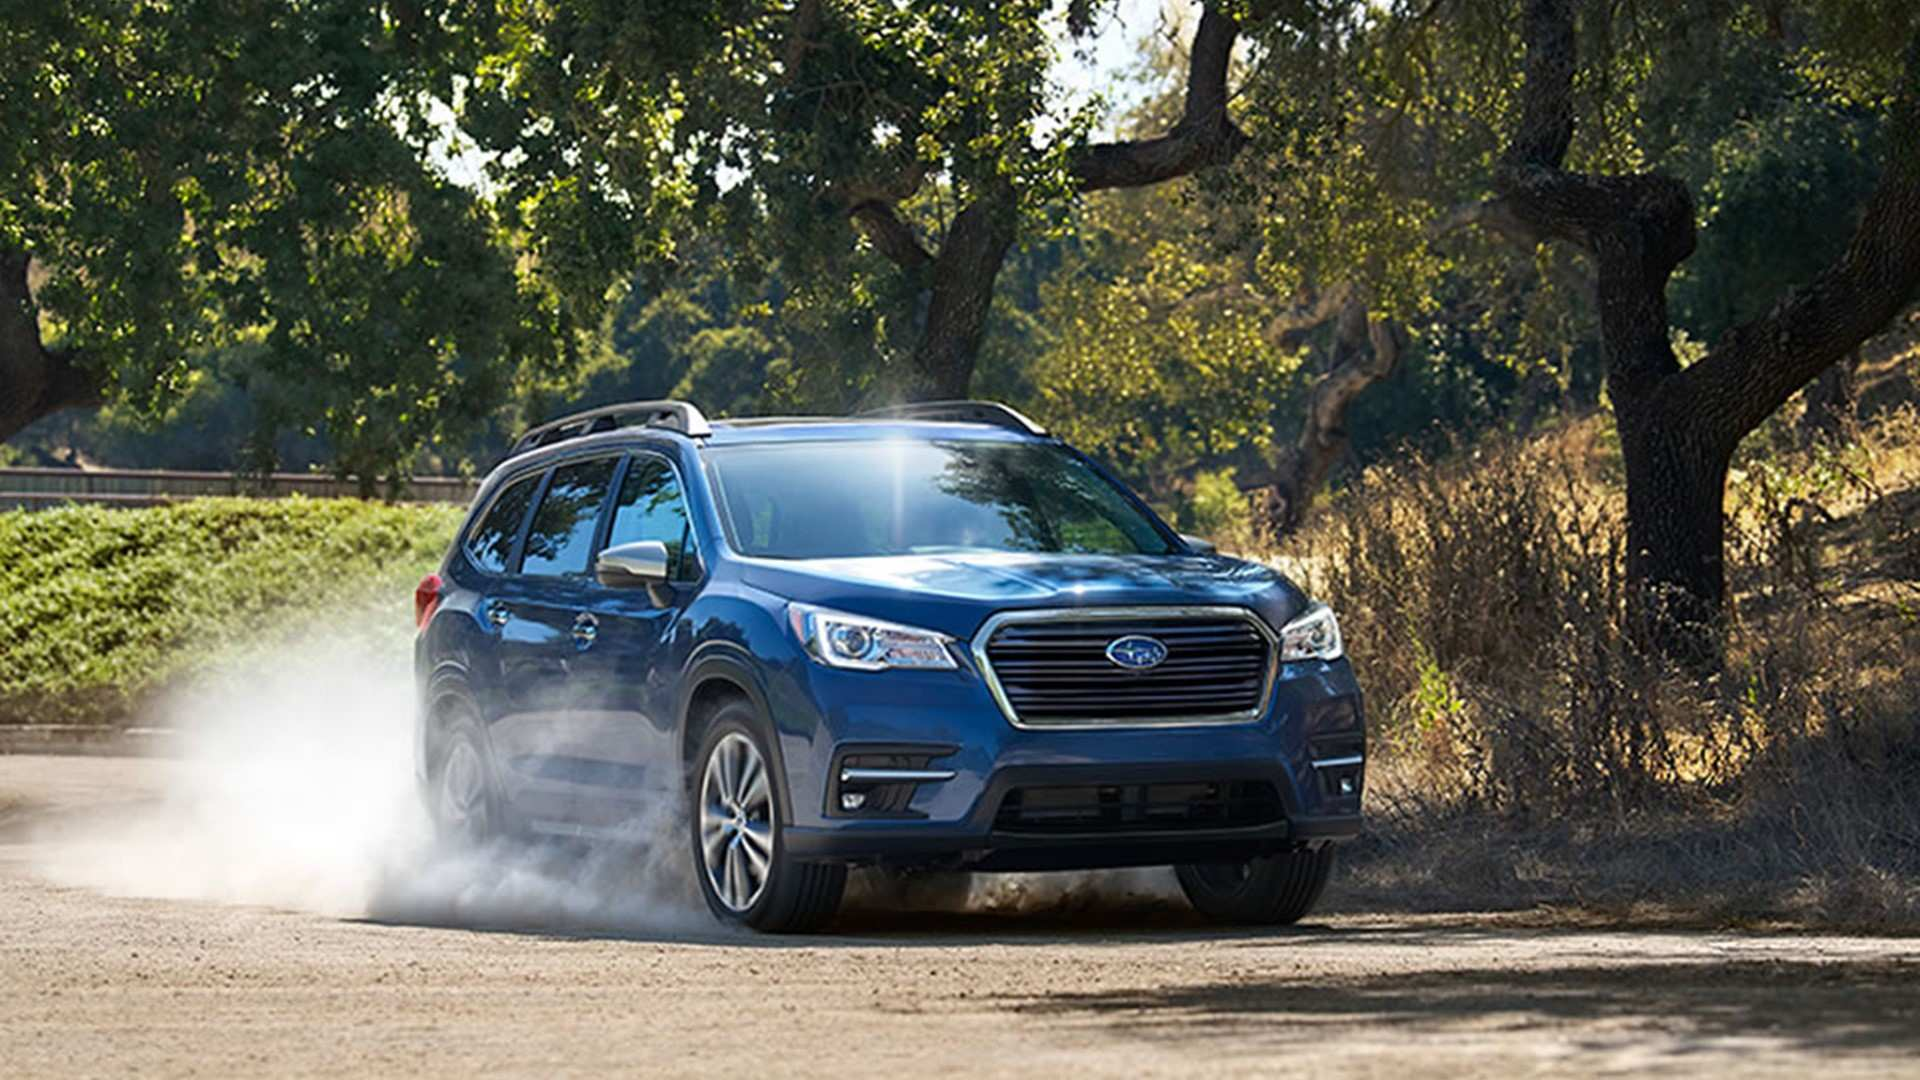 50 Great New Subaru Unveils 2019 Ascent Price And Release Date Price and Review for New Subaru Unveils 2019 Ascent Price And Release Date